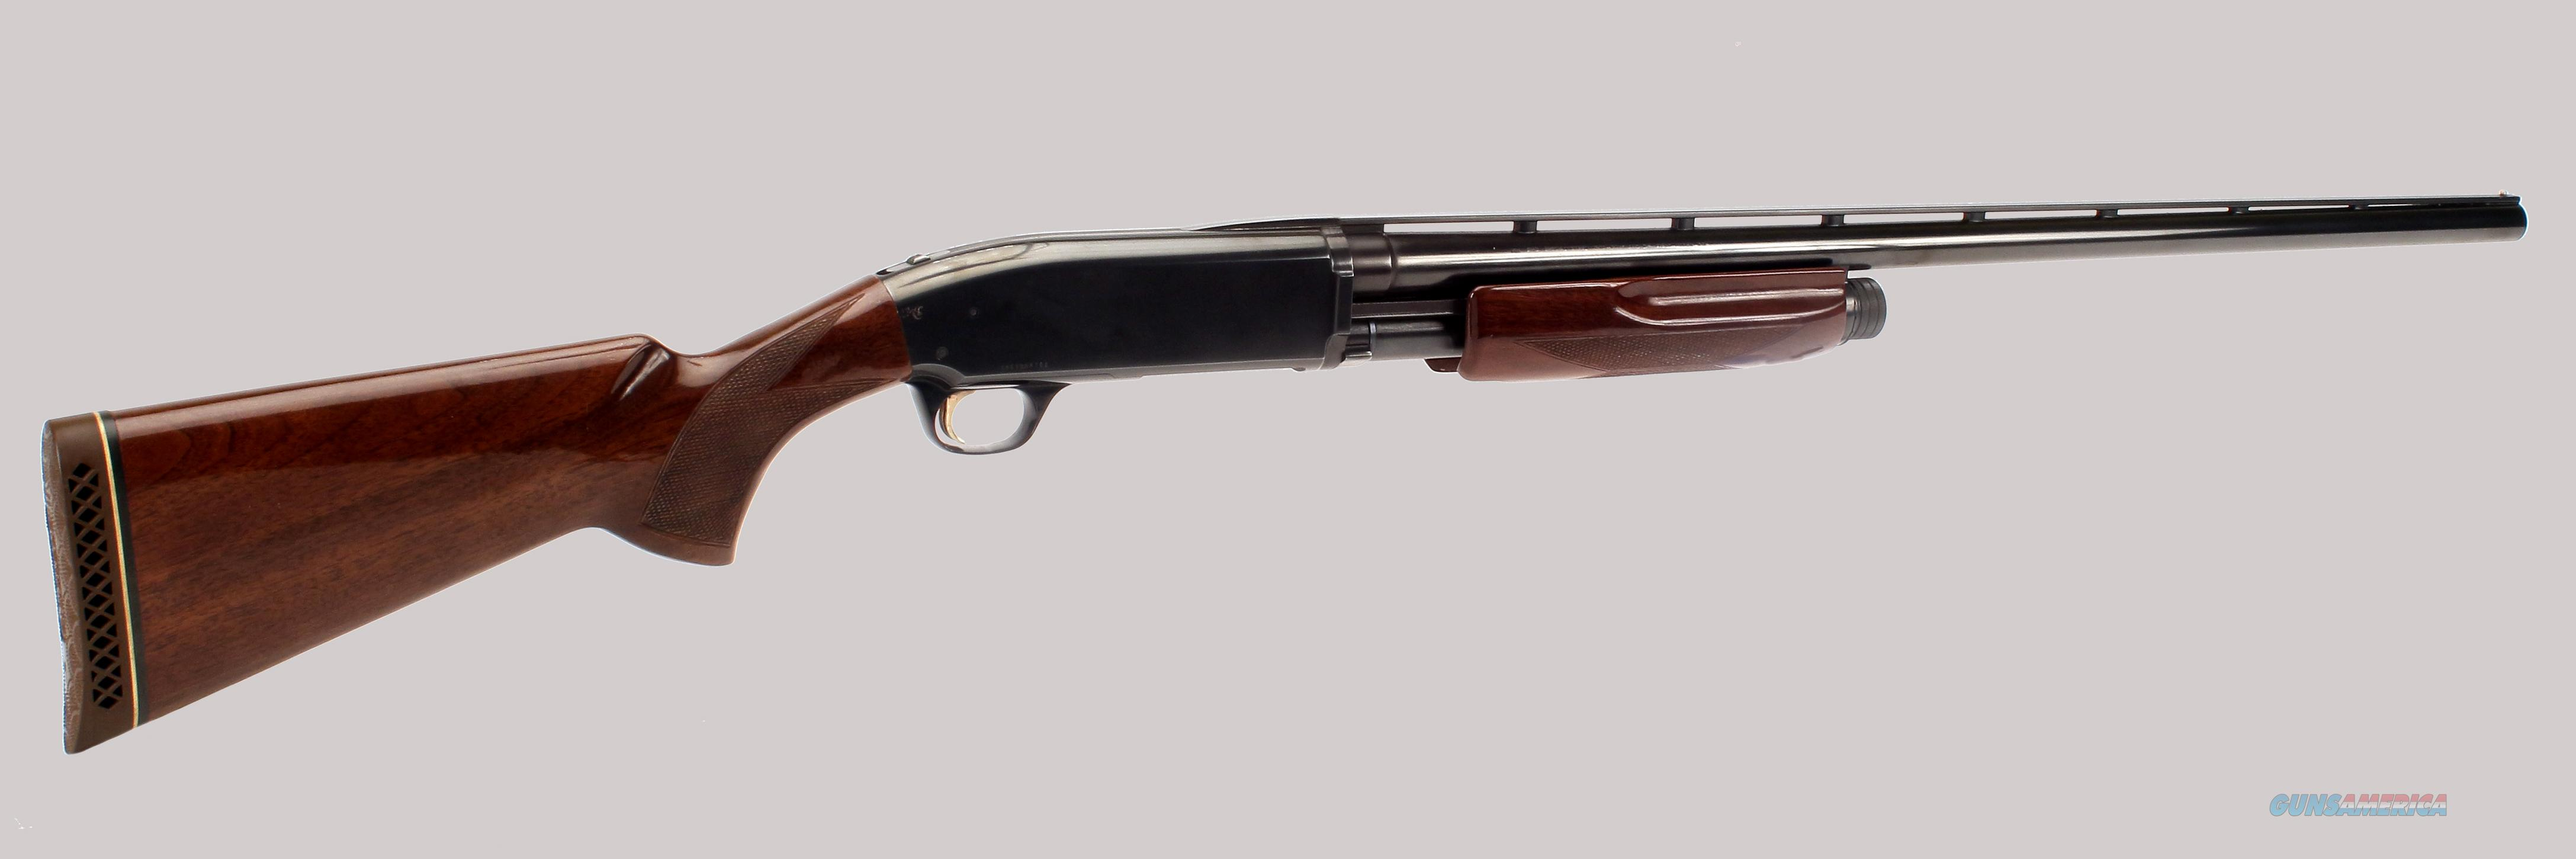 Browning BPS Pump Shotgun for sale